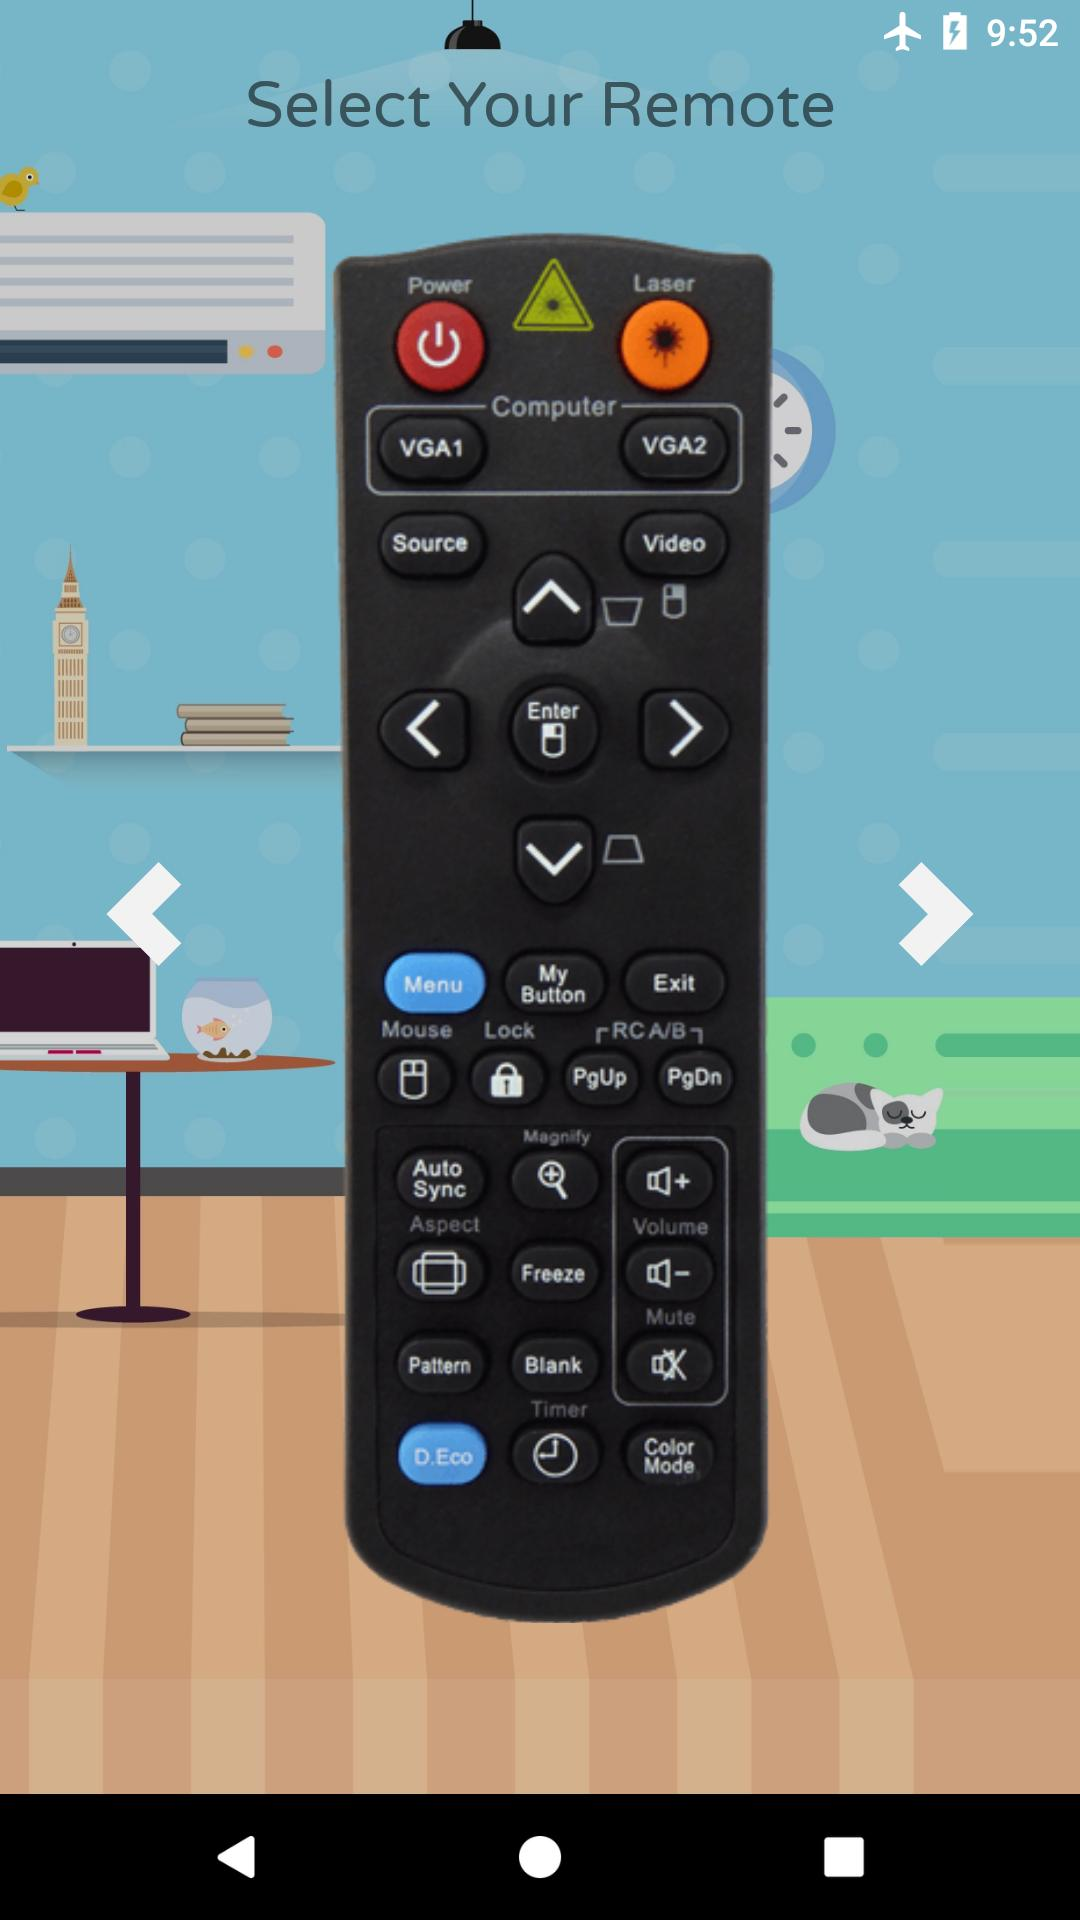 Remote Control For ViewSonic Projector for Android - APK